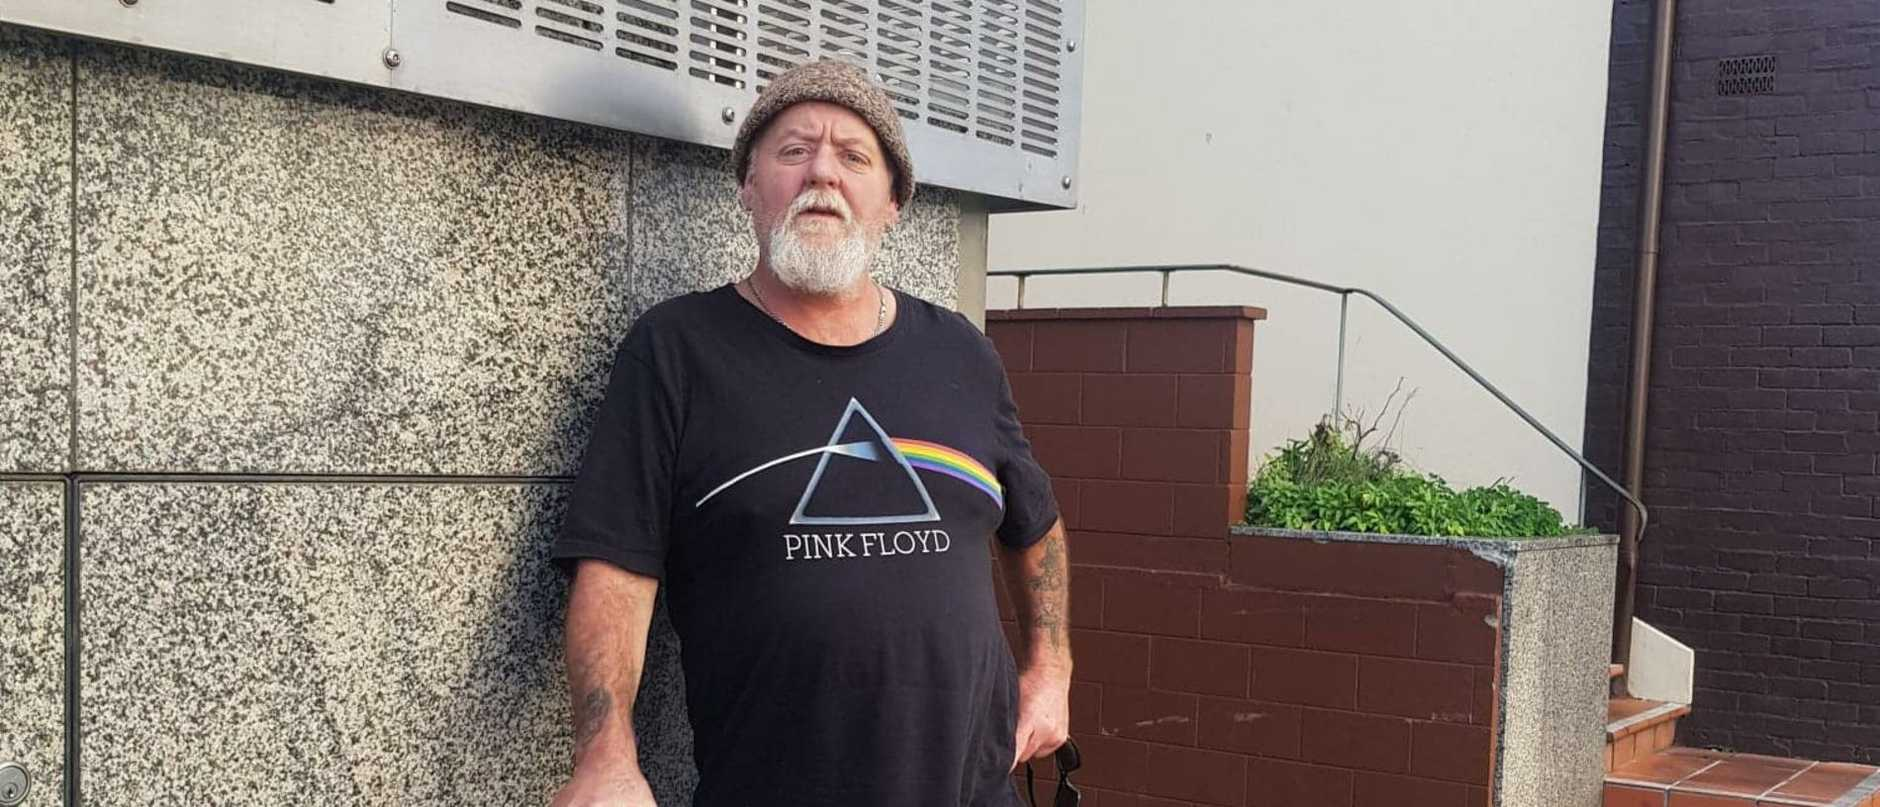 Disability pensioner Scott Wayne Moore planned to dump eight tonnes of cow manure outside outside the office of a state premier.